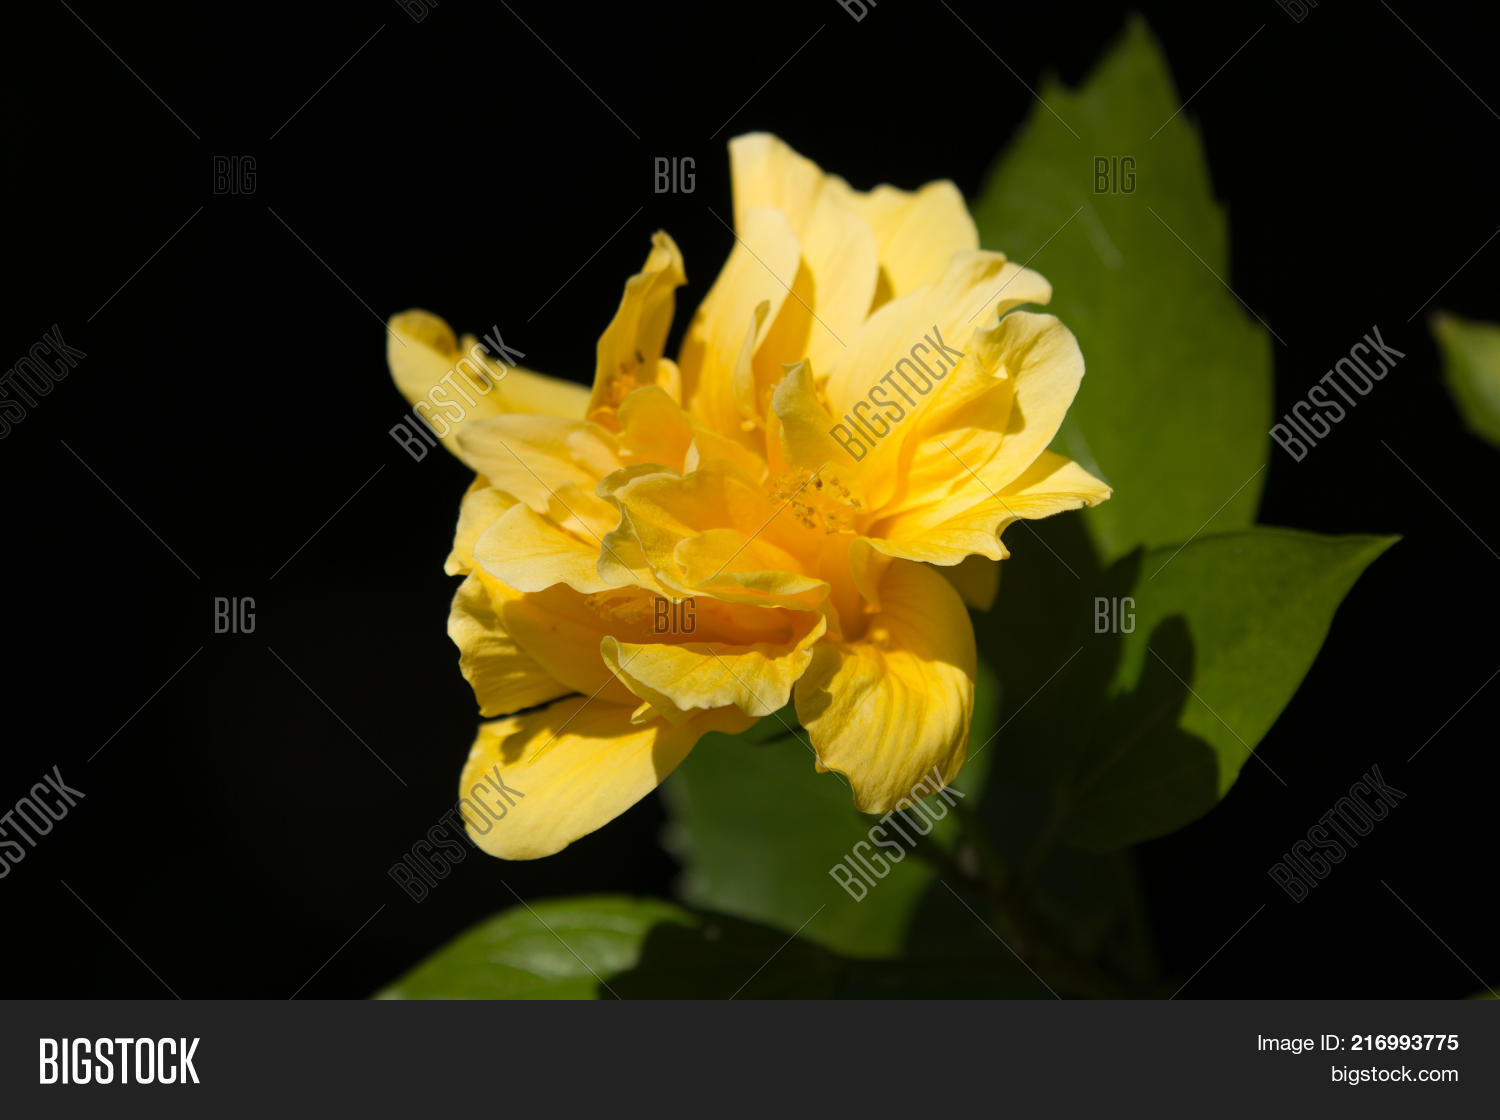 Yellow hibiscus flower image photo free trial bigstock yellow hibiscus flower in black dard background izmirmasajfo